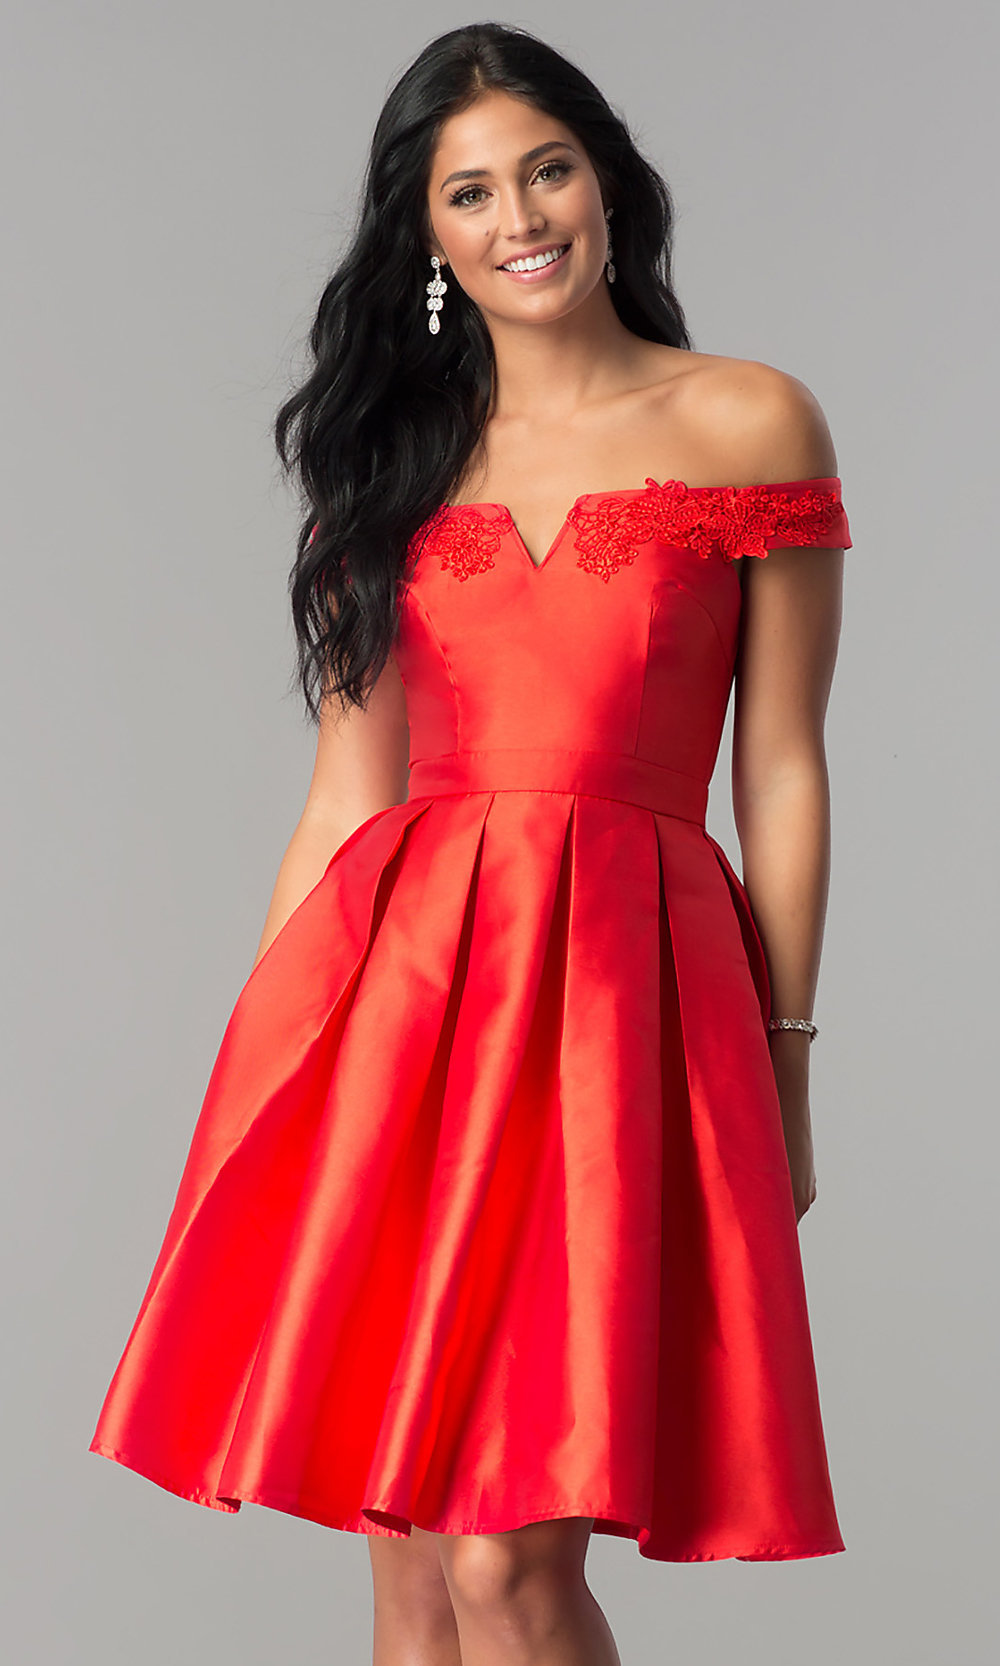 cheaper sale bright in luster new varieties Lace-Edge Notched Off-the-Shoulder Homecoming Dress